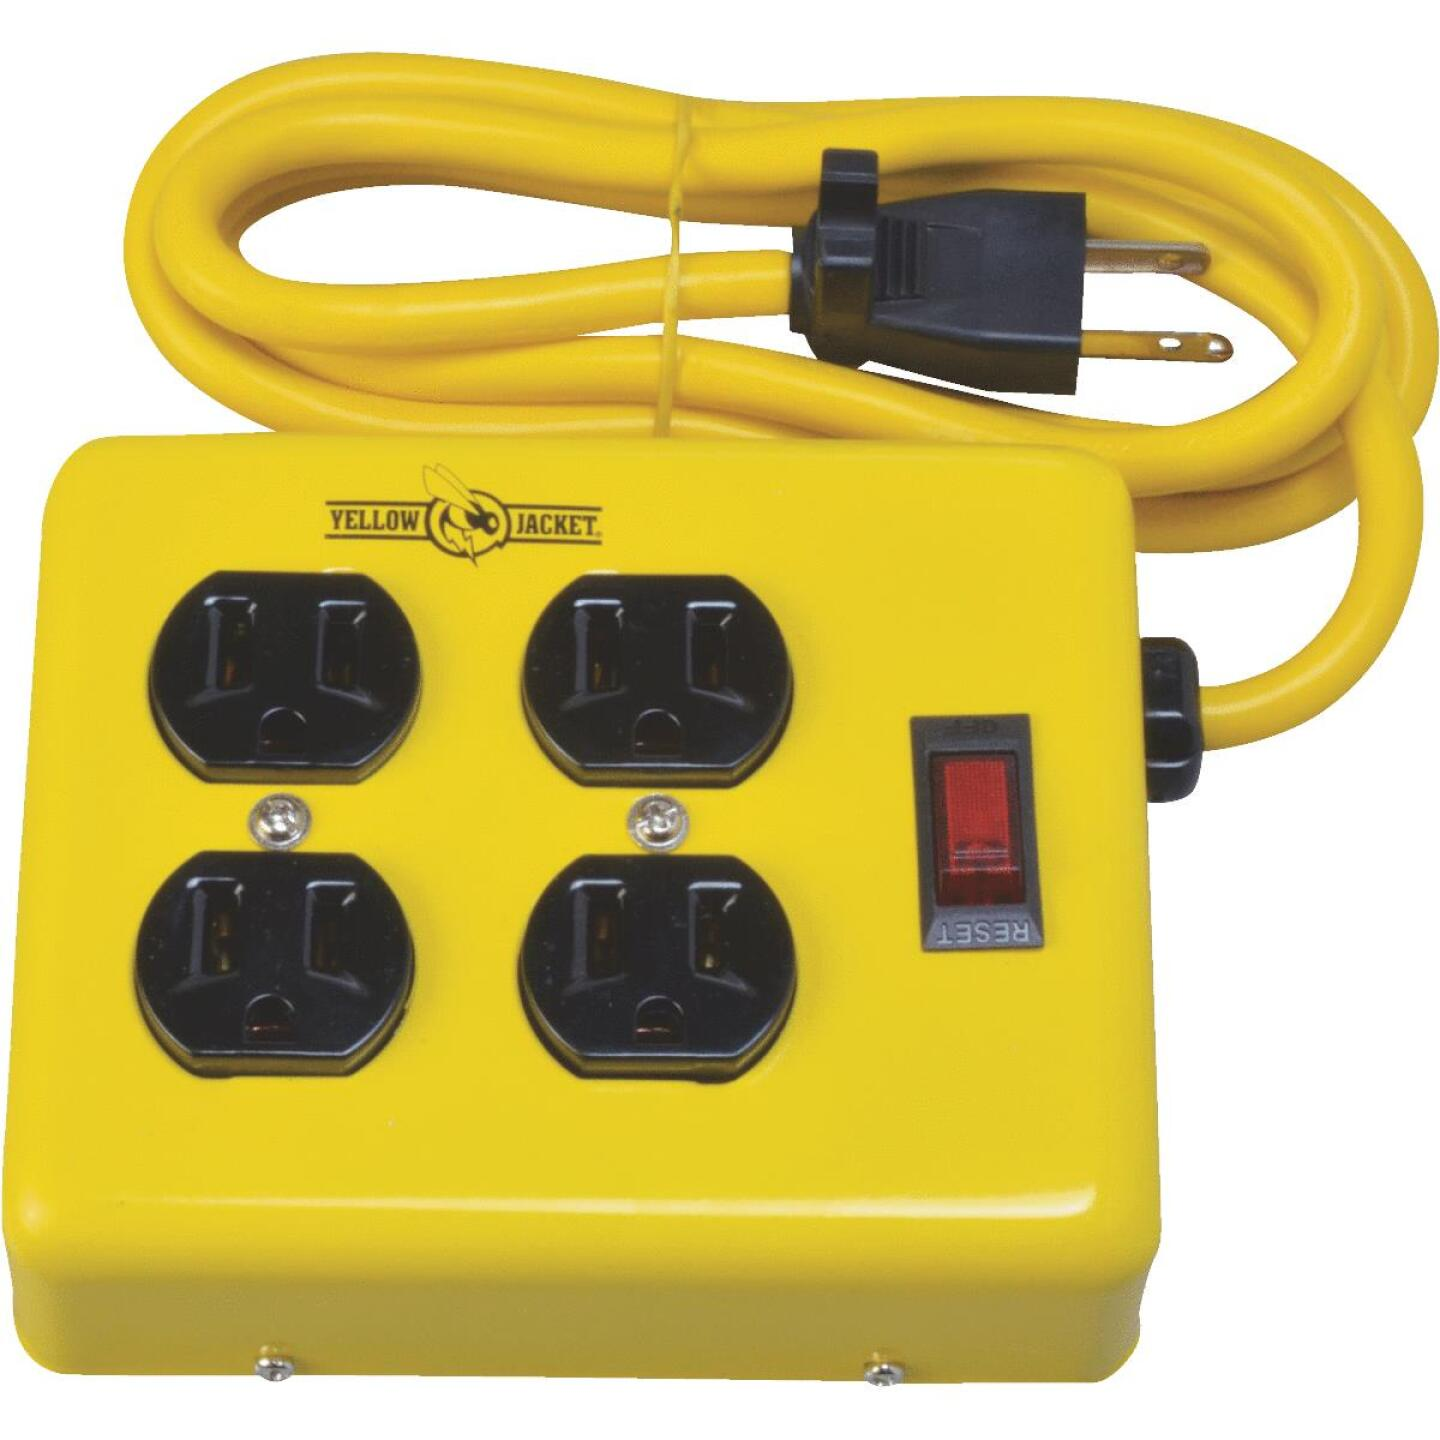 Yellow Jacket 4-Outlet Yellow Metal Power Strip with 4 Ft. Cord Image 1